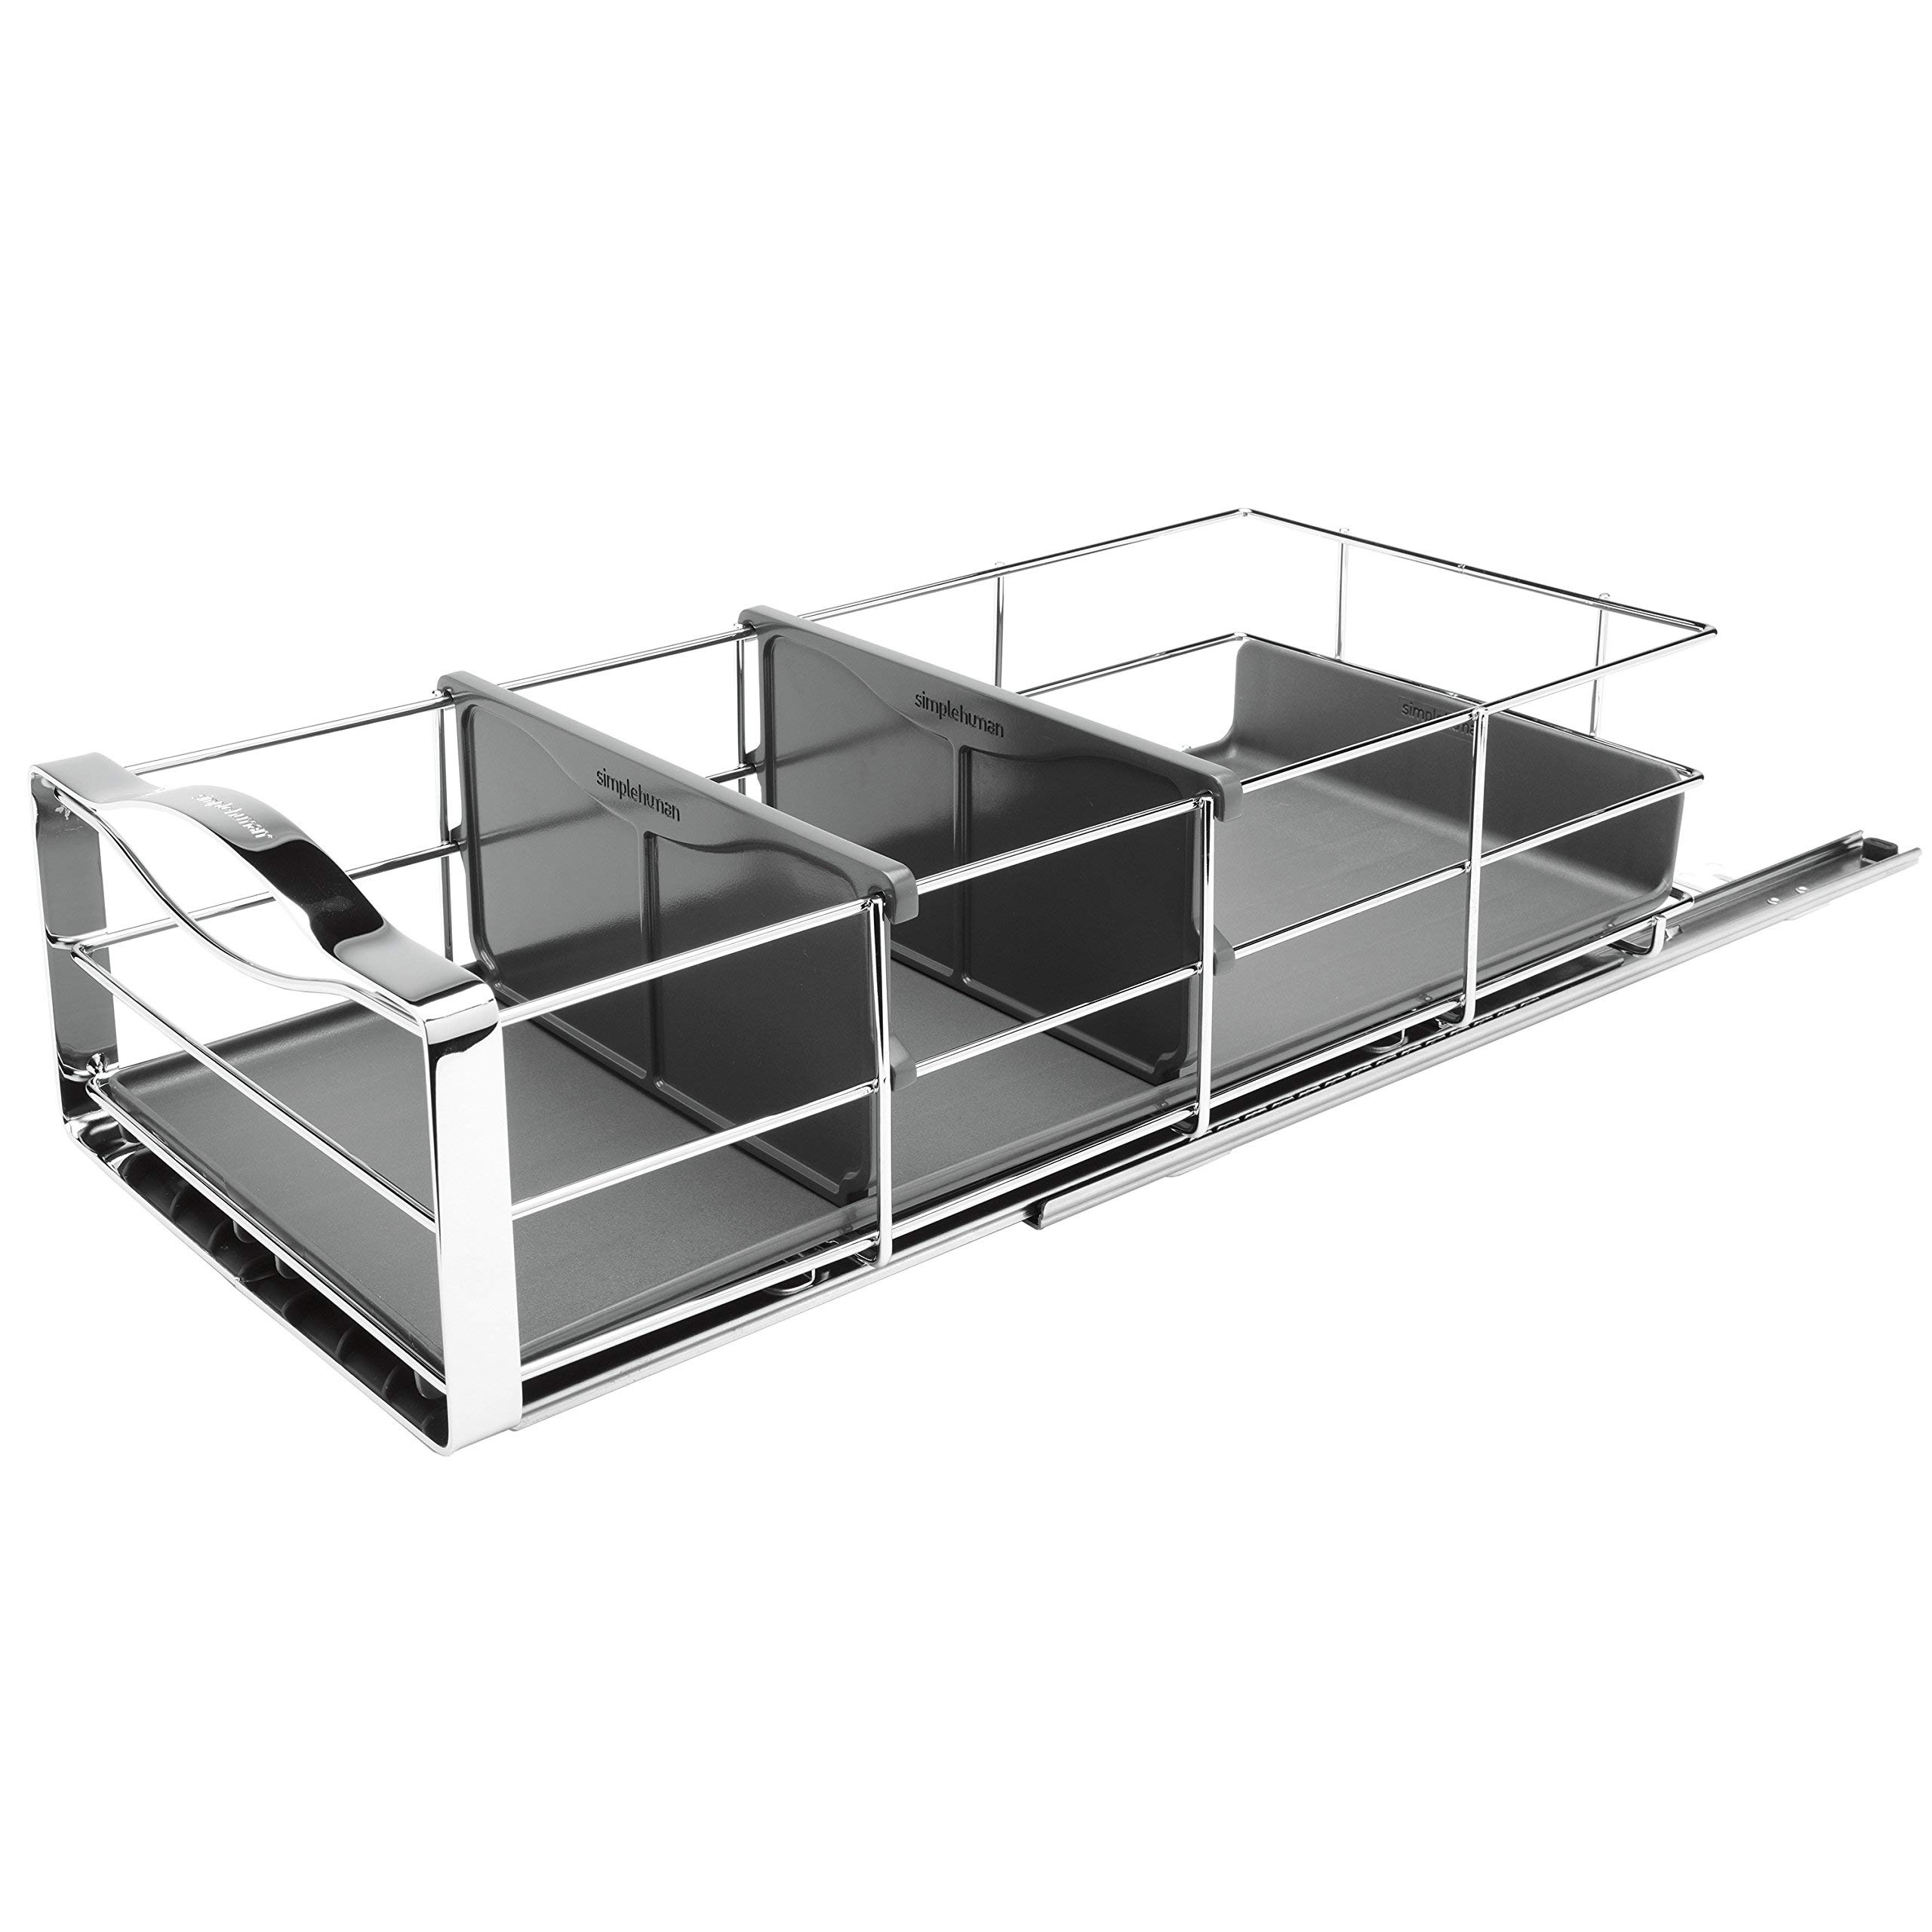 simplehuman Pull Out Cabinet Organizer 9'', Stainless Steel (Renewed) by simplehuman (Image #1)